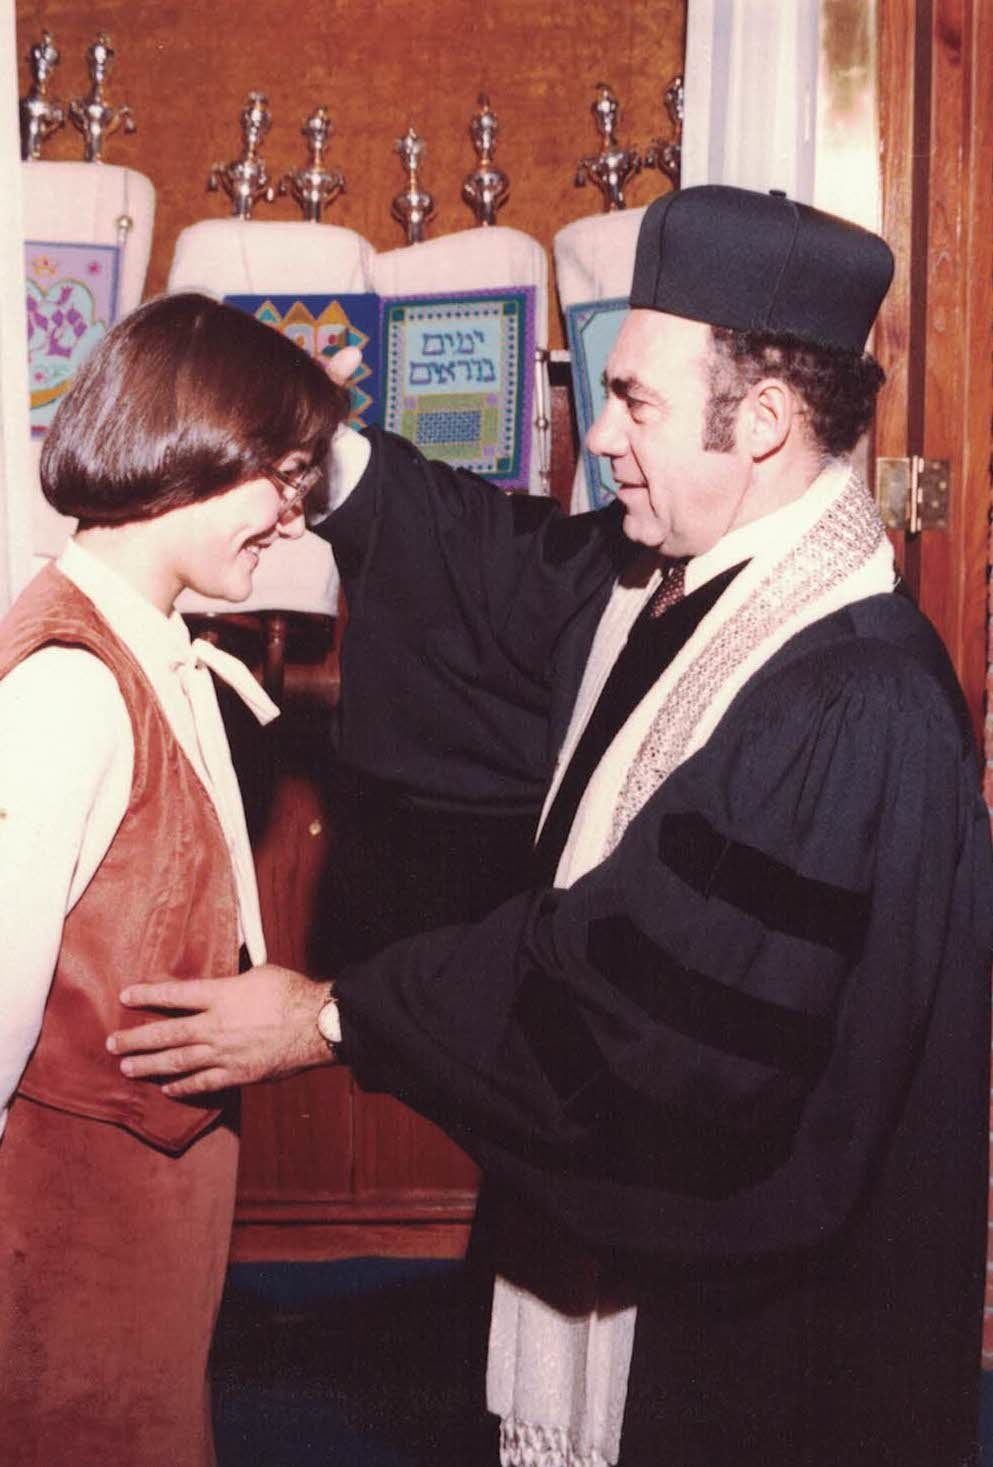 Rabbi Phillip Lazowski blessing (now rabbi) Deborah Waxman as she became bat mitzvah on November 17, 1979.